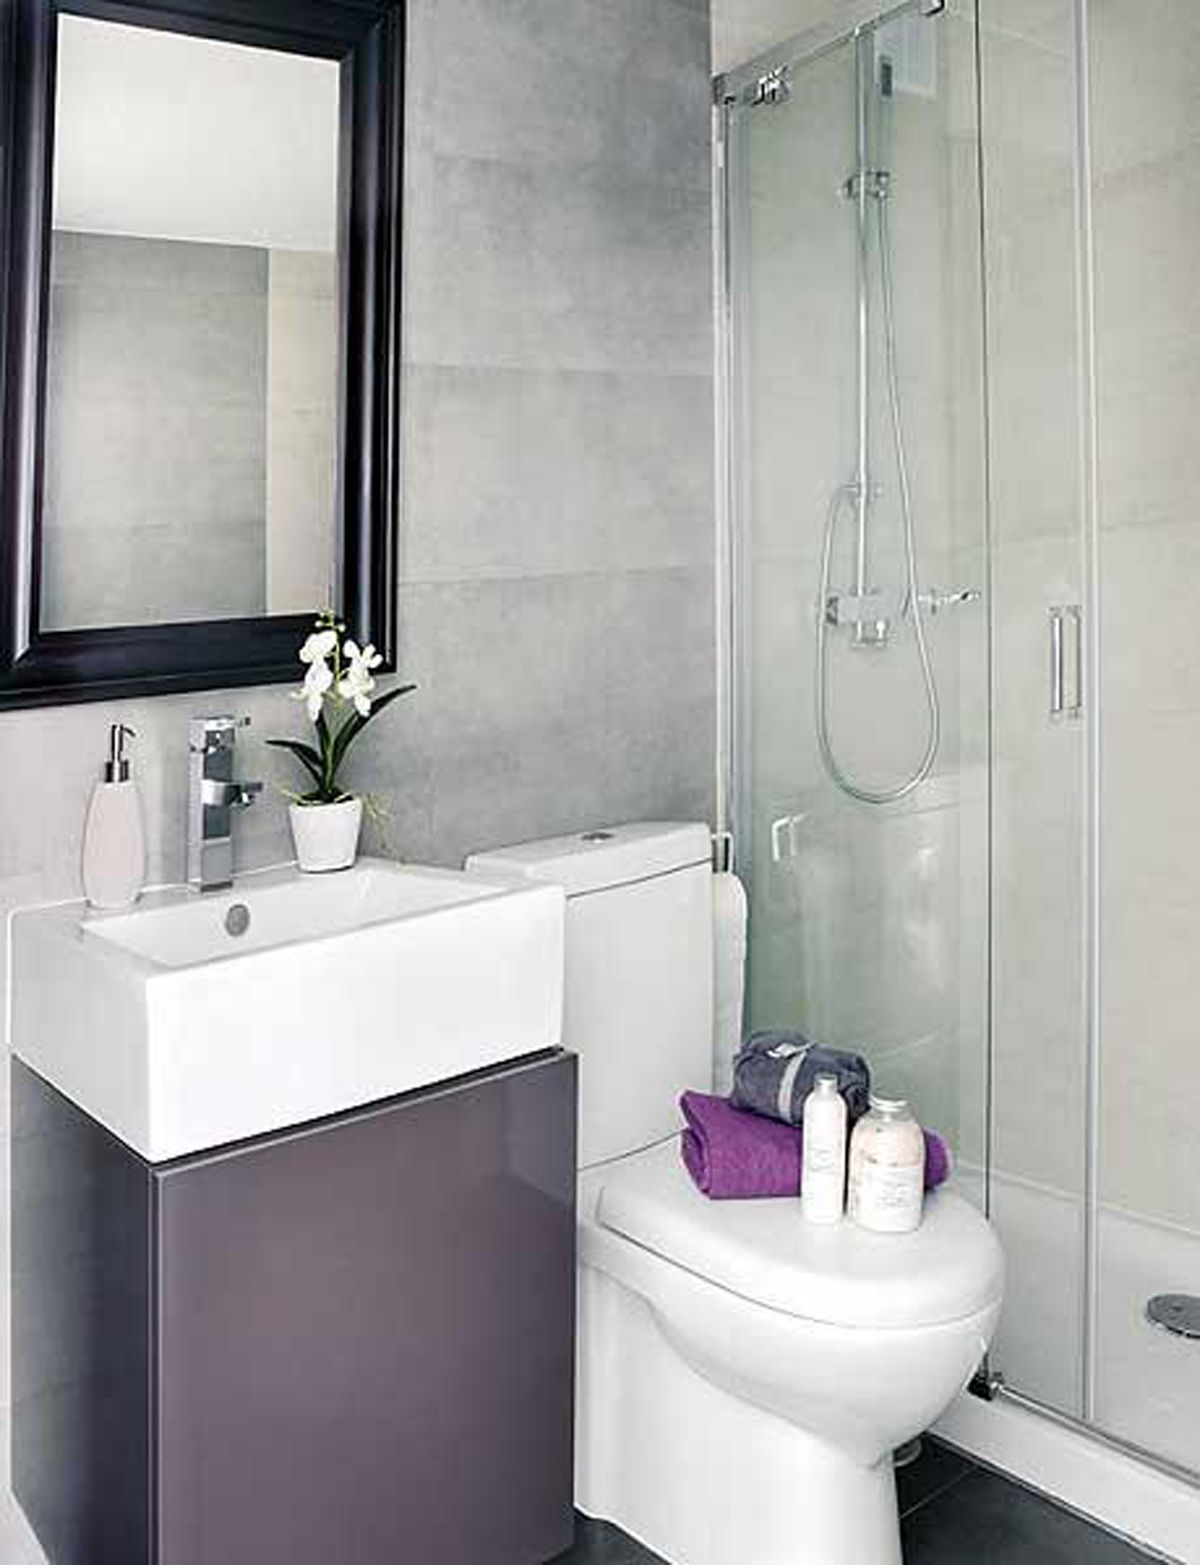 intrinsic interior design applied in small apartment architecture awesome interior design of a small 40 square meter apartment small 40 square meter apartment with white purple bathroom wall mirror wash basin storage